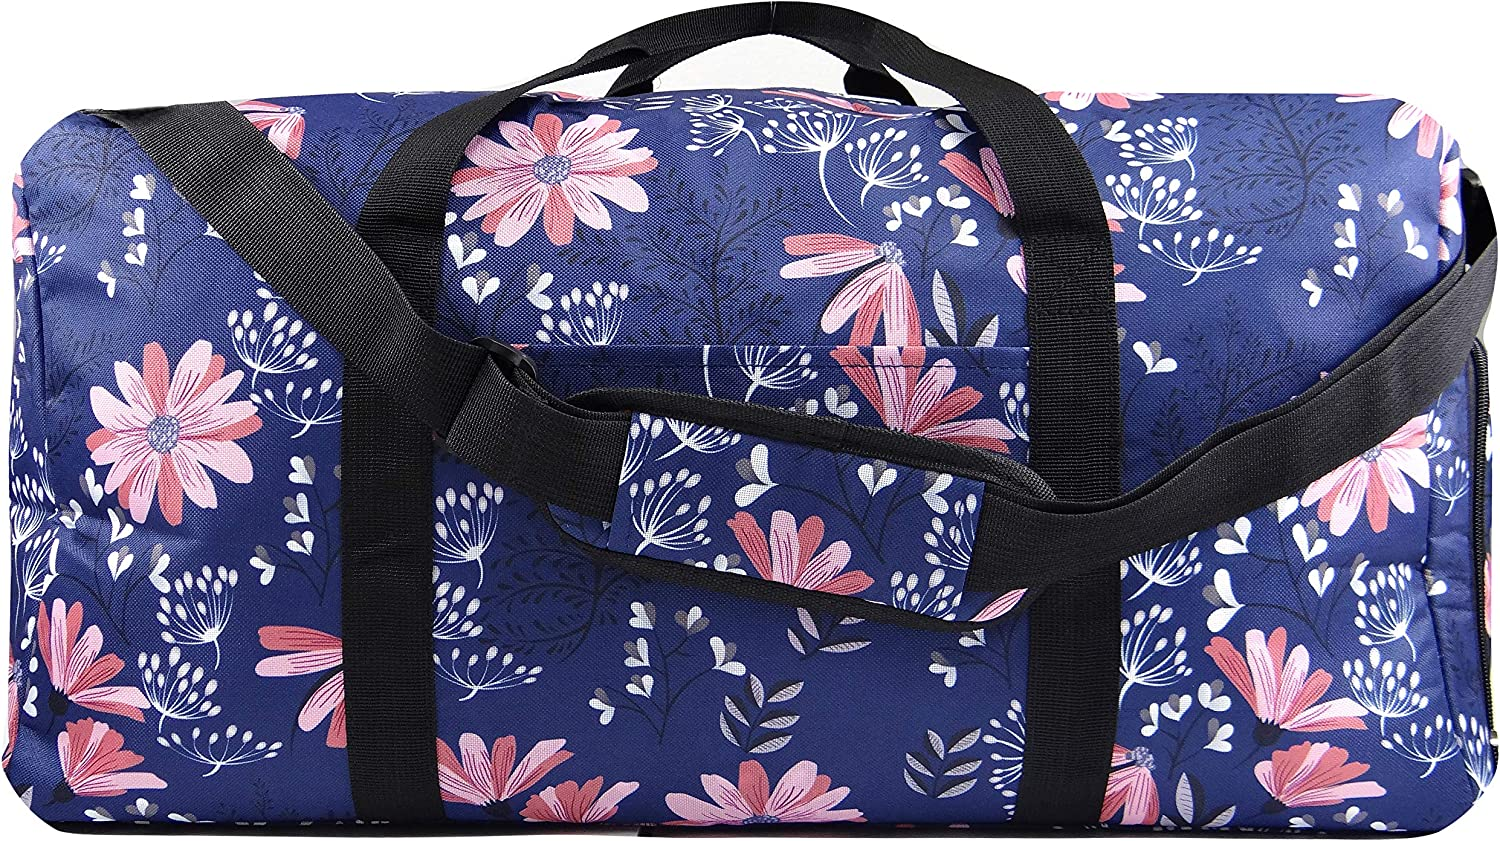 AEV 22 Women s Weekender Duffel Bag with Shoe Pocket, Navy Floral. Versatile as a Weekender or Overnight bag. Carry-on shoulder strap. Sale Today